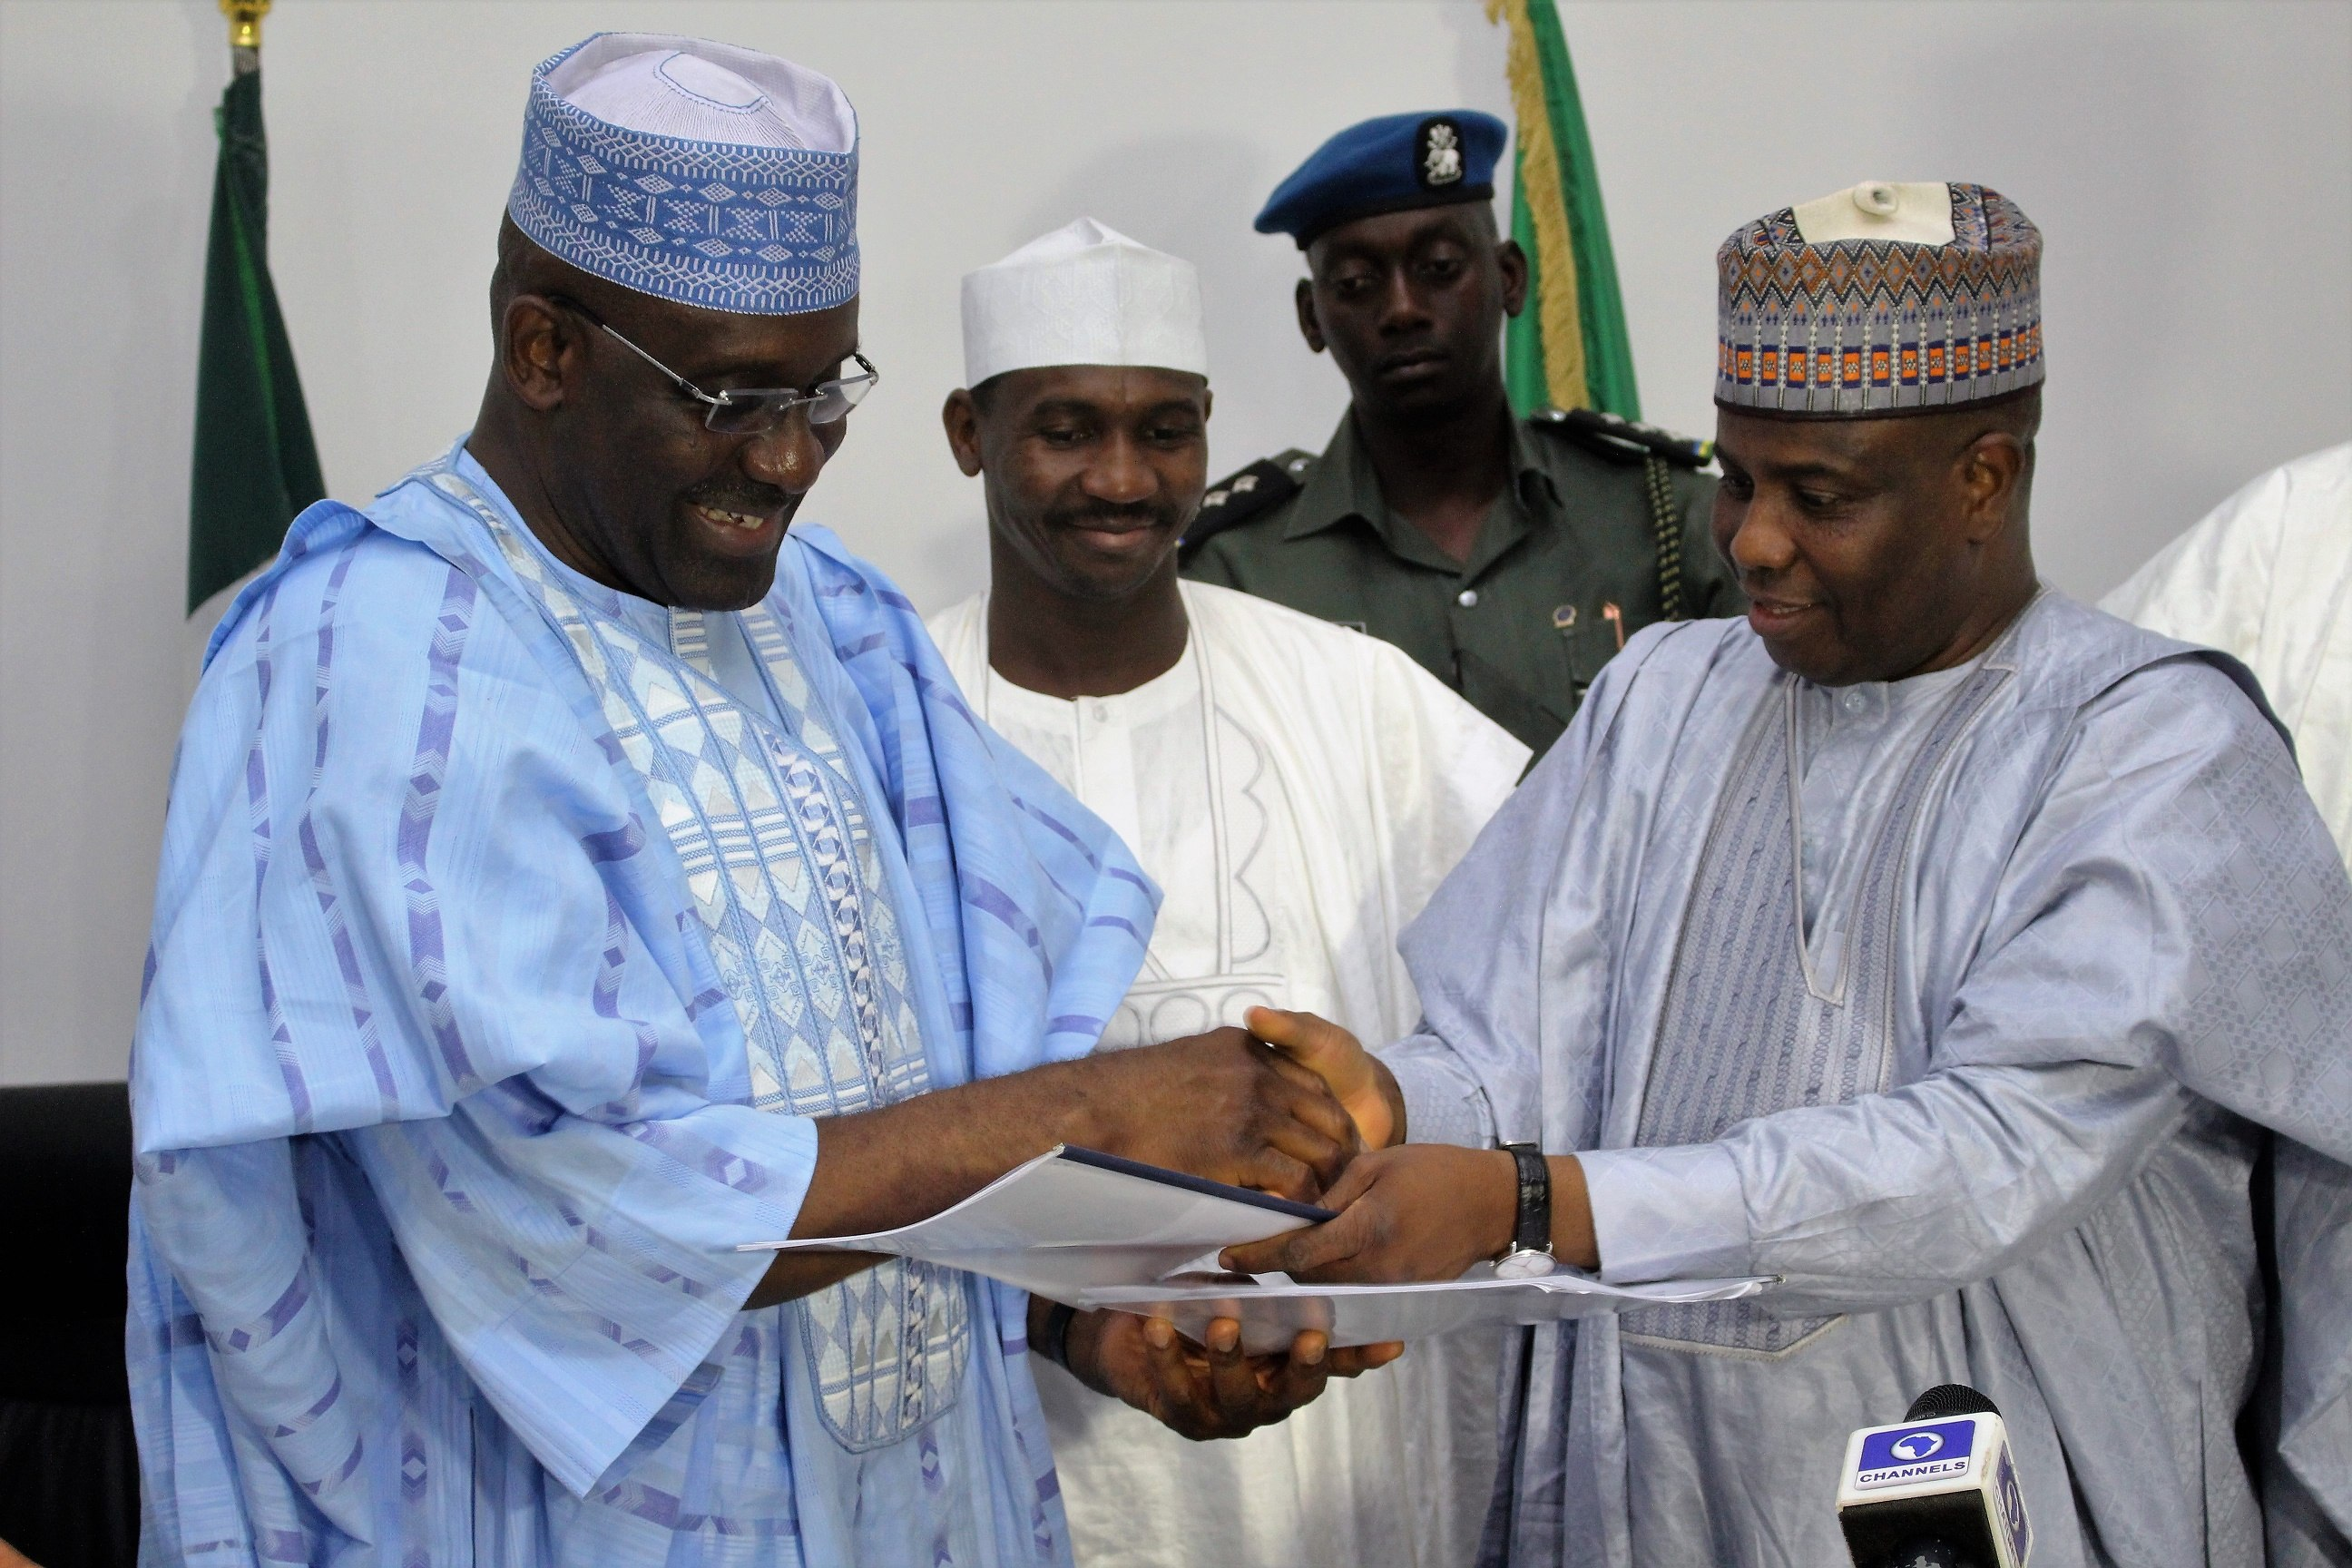 L-R: Ag Managing Director of Bank of Industry, Mr. Wahid Olagunju with Sokoto State Governor, Aminu Waziri Tambuwal, after the signing of agreement to provide N2billion to SMEs in Sokoto. Middle of Deputy Governor Ahmed Aliyu....Thursday 05/05/2016